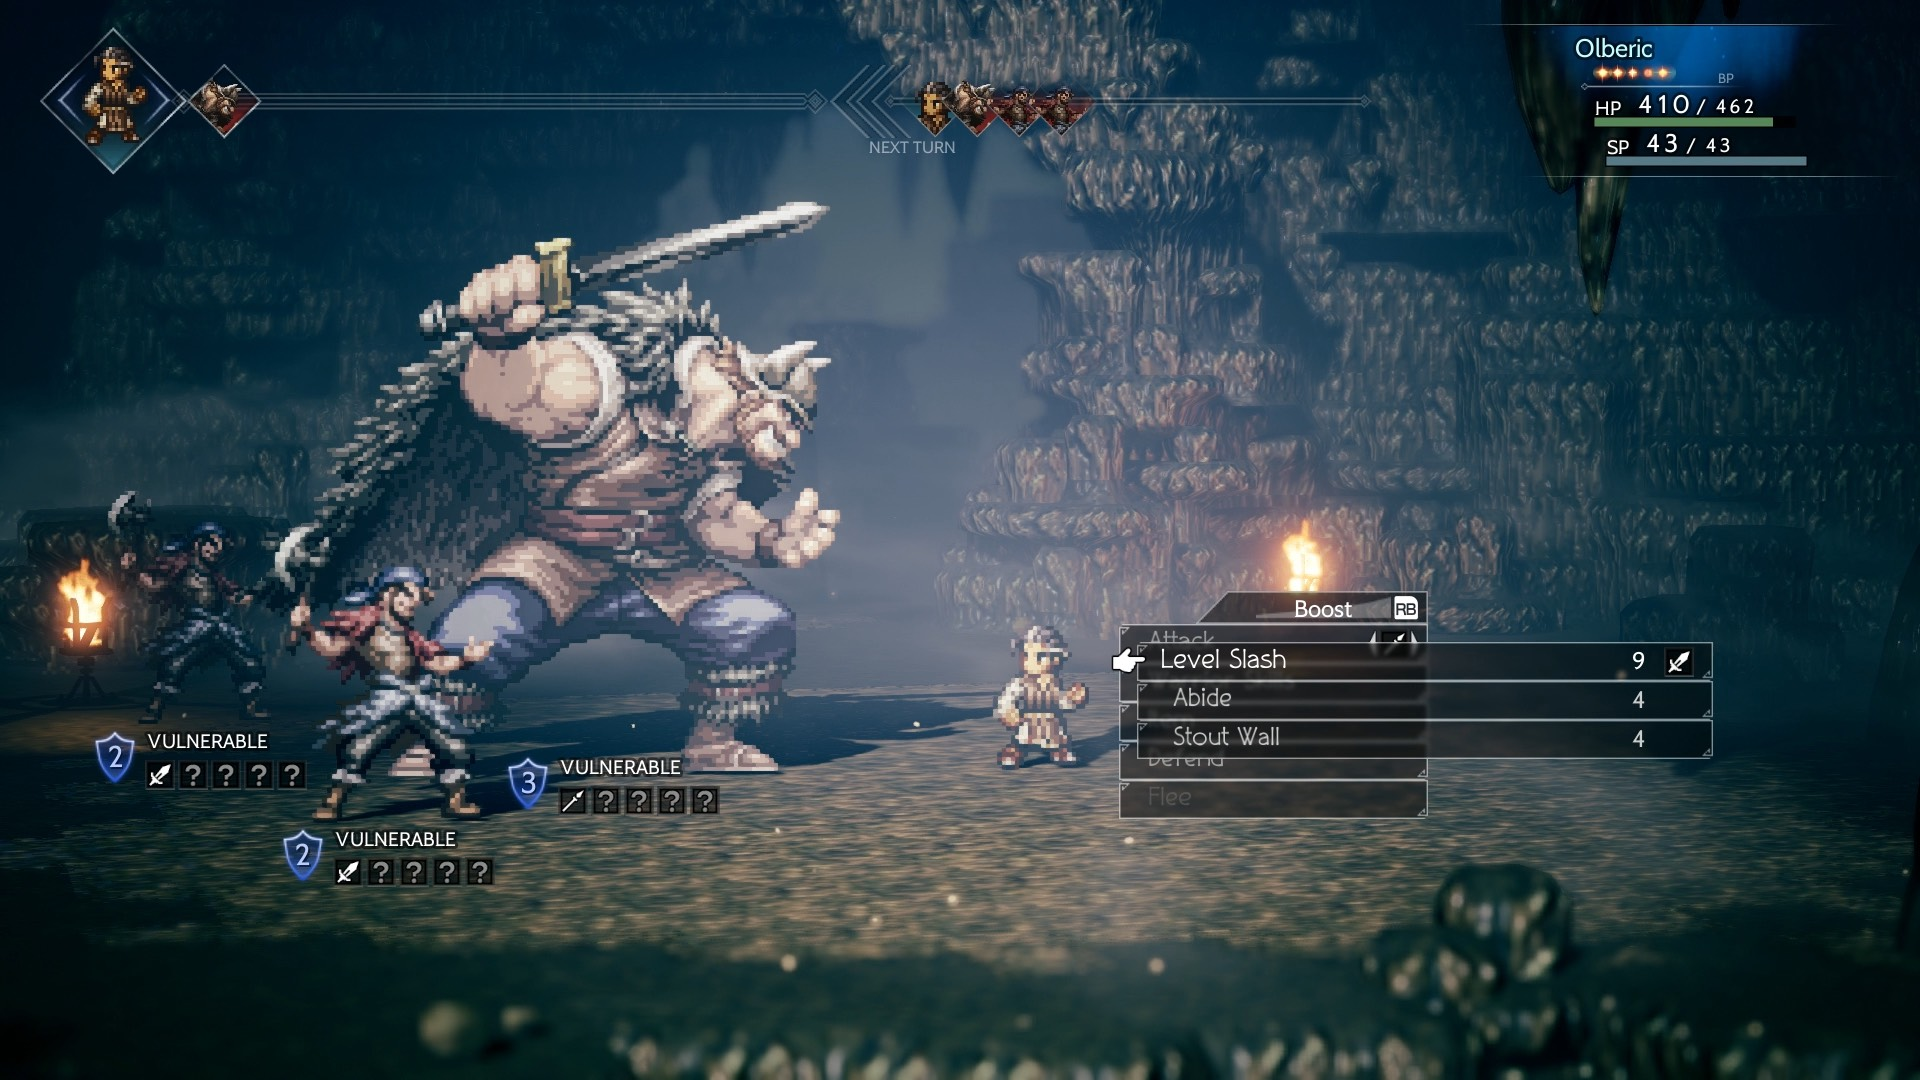 Octopath Traveler Screenshot of Olberic facing off against a giant Viking-like warrior and his cronies.